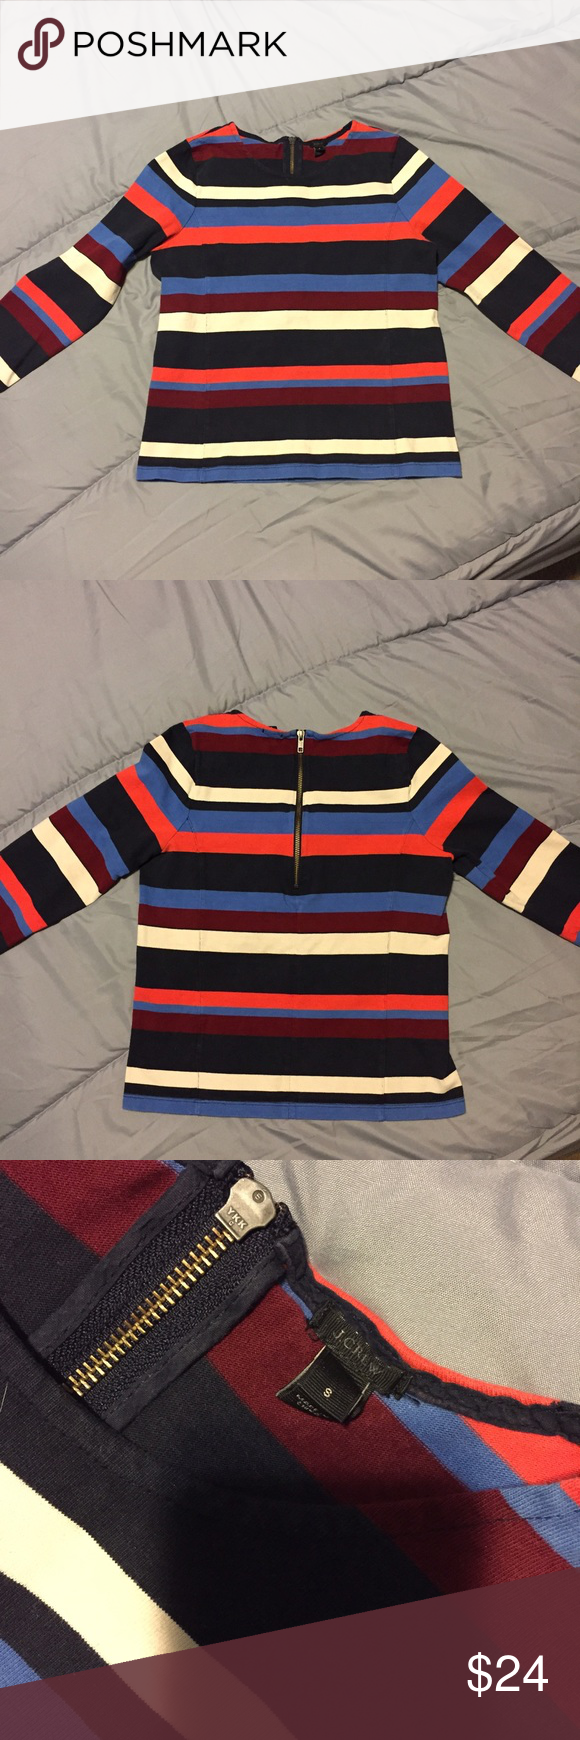 "Colorblock stripe top with Back zip. Women's 100% Cotton Long Sleeve Top. Back zipper. In excellent preloved condition.  Chest: 17"" Length: 20""  Sleeve: 20"" J. Crew Tops Blouses"